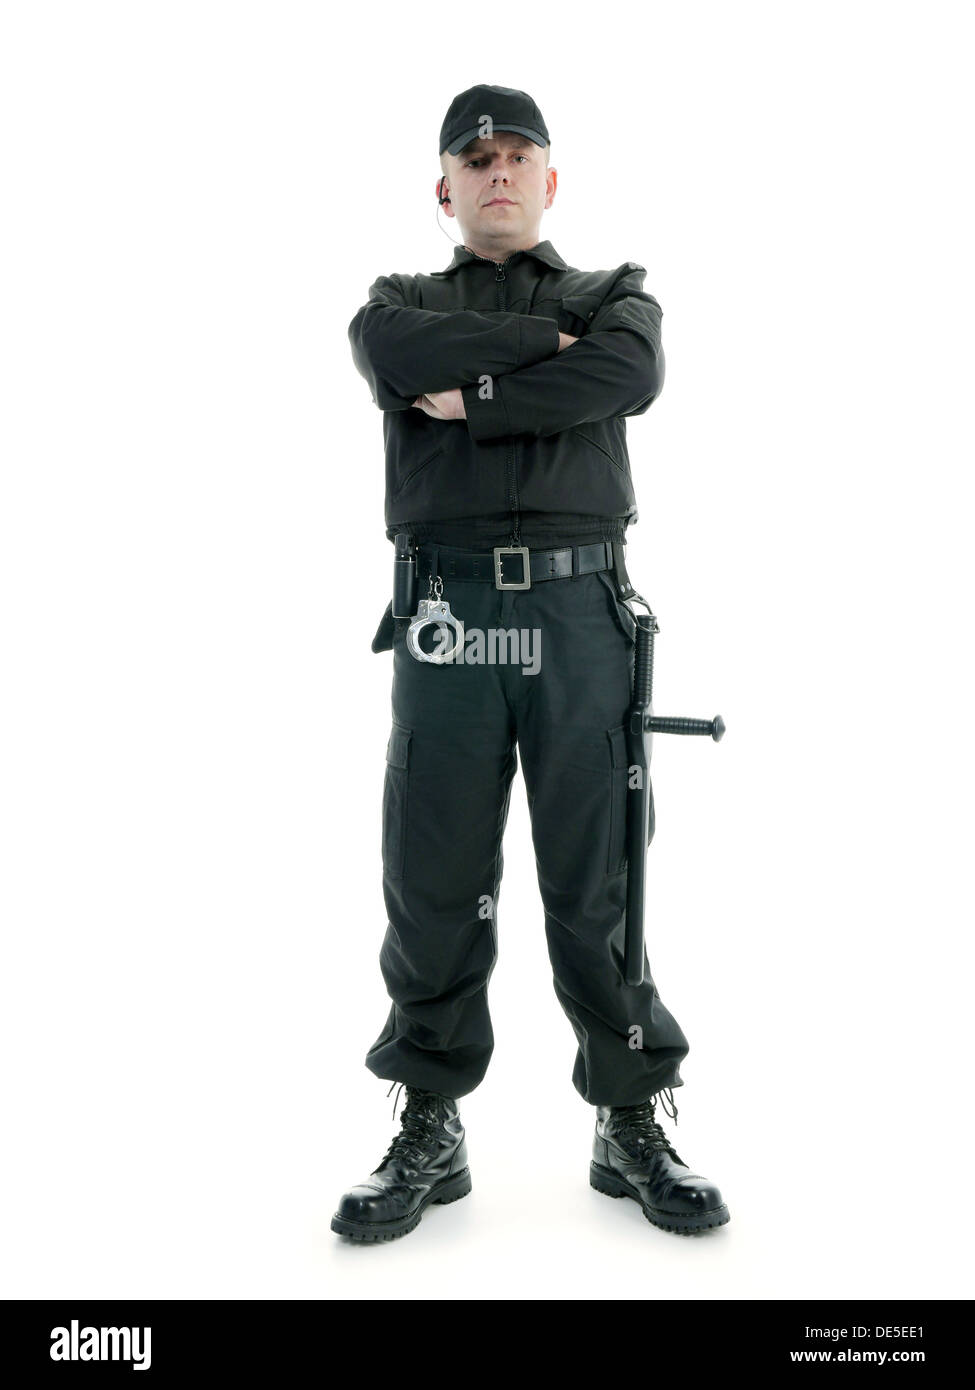 Security man wearing black uniform equipped with police club and handcuffs standing confidently with arms crossed, shot on white - Stock Image